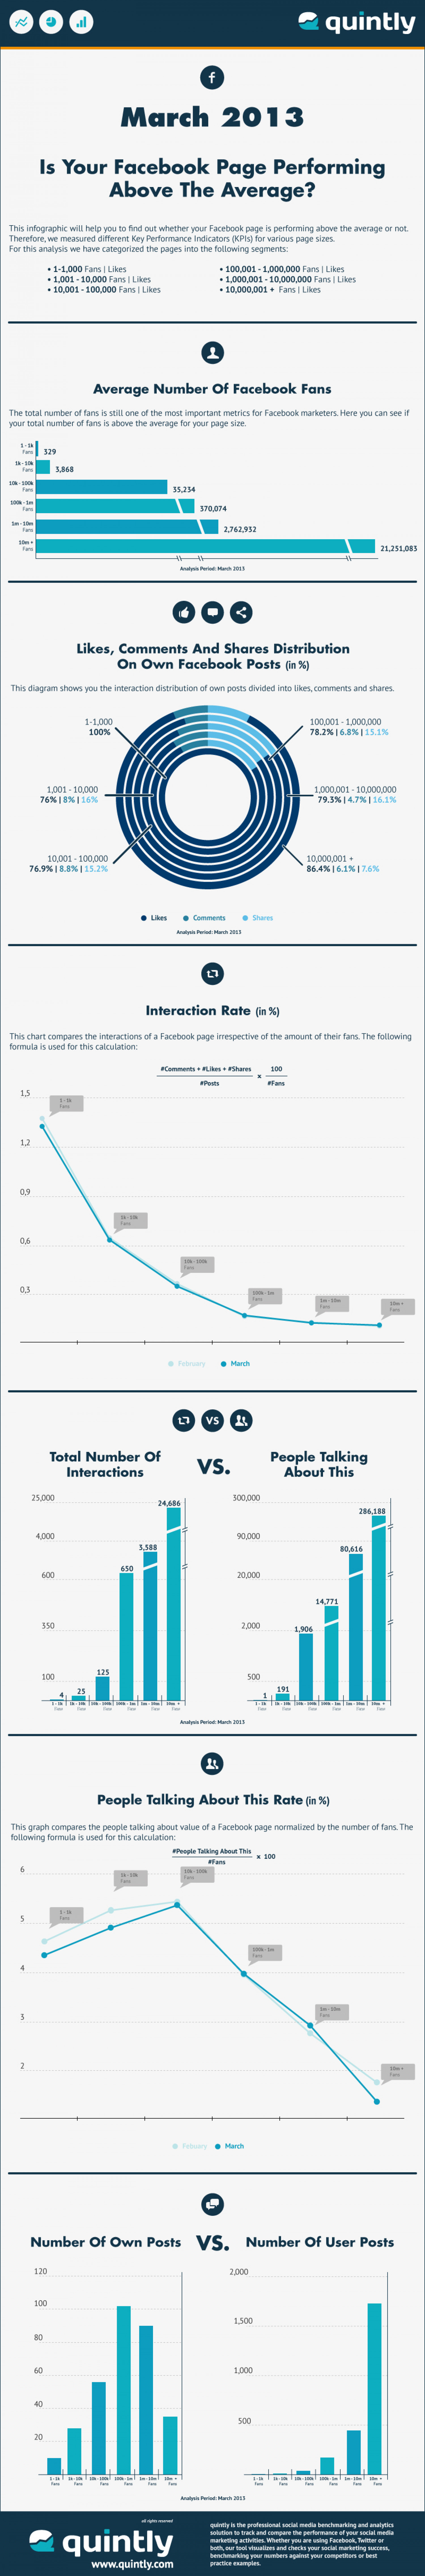 The Average Facebook Page Performance For March 2013 Infographic